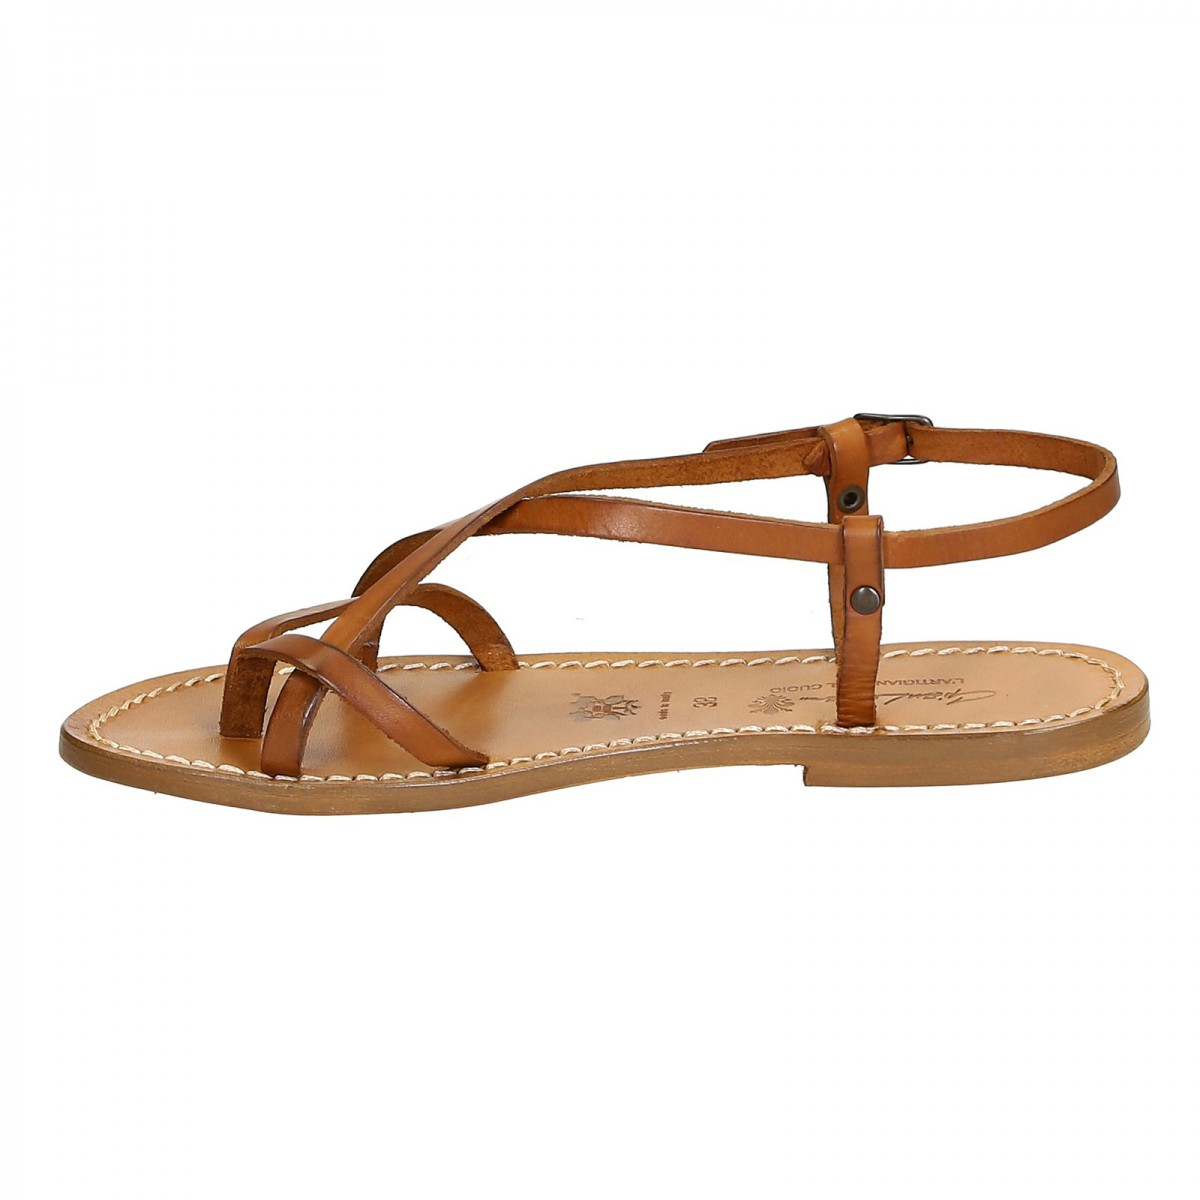 0e6d93048bd2 Loading zoom · Women s leather sandals Handmade in Italy in vintage cuir.  Previous. Next